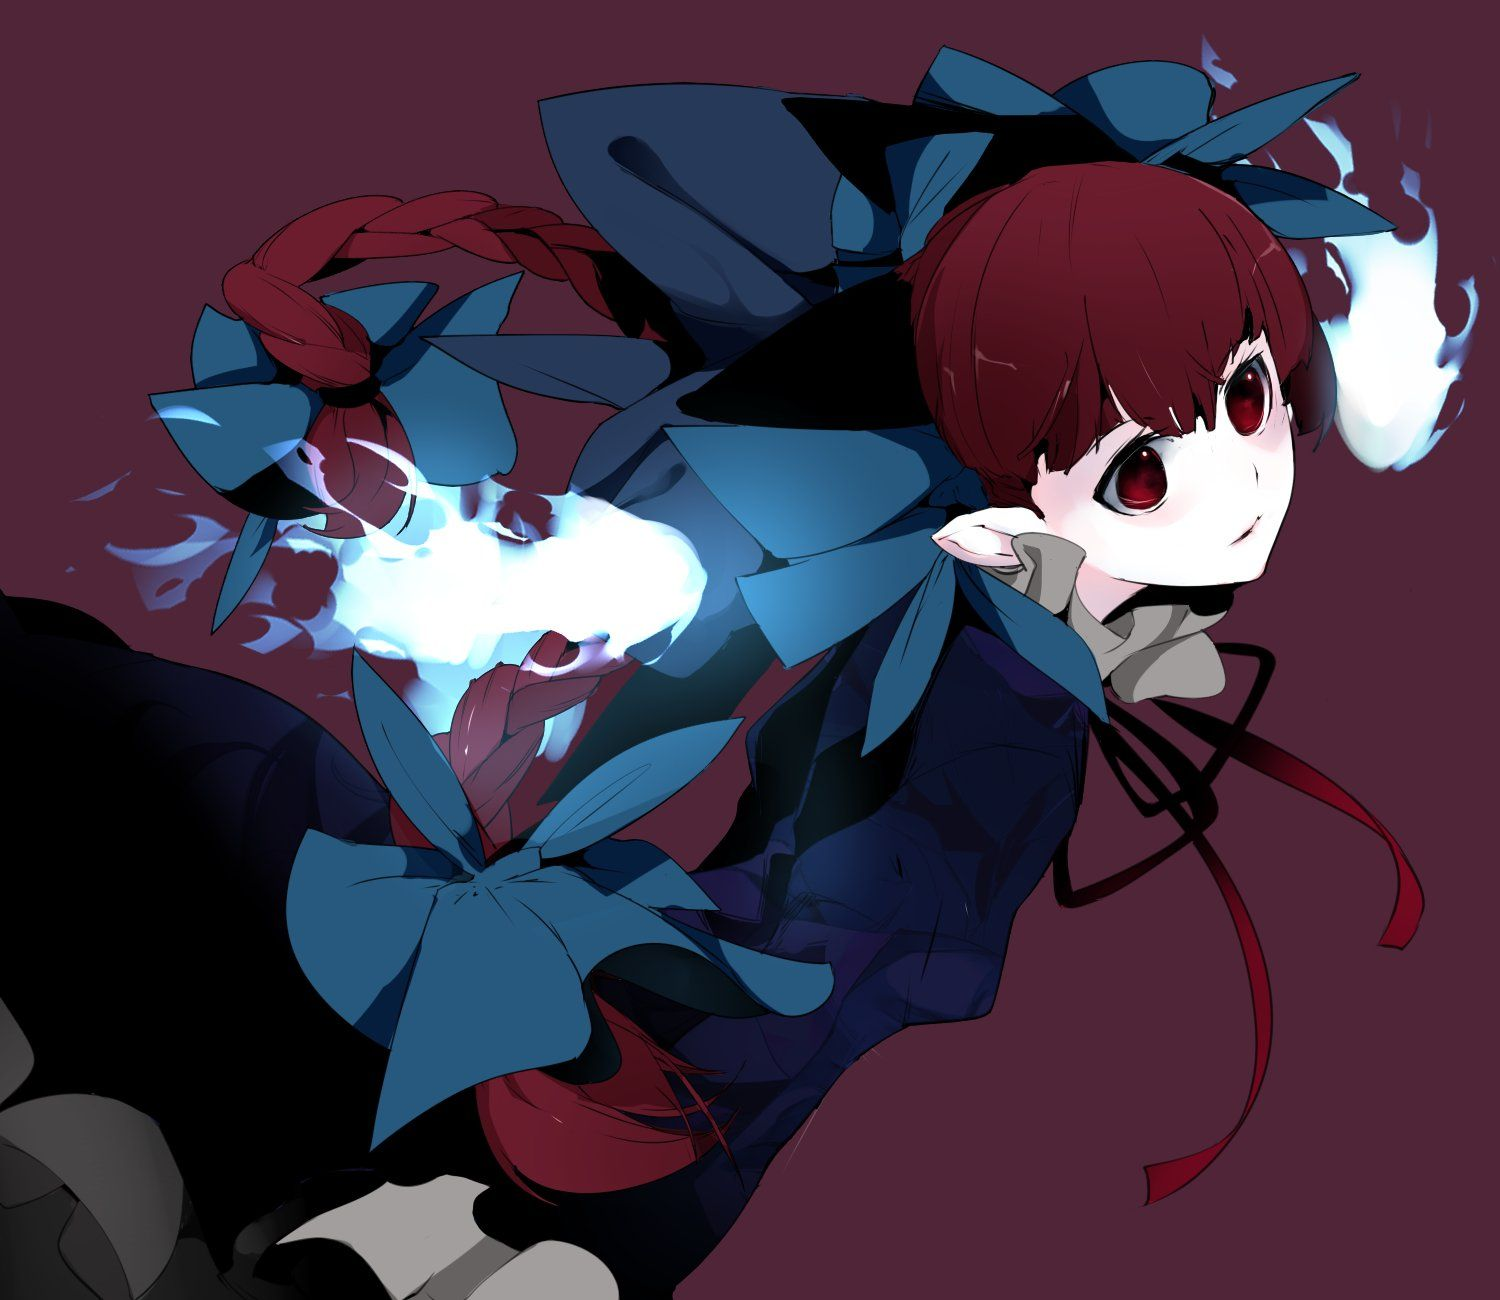 Pin by Phoenixwing on Rin Kaenbyou Touhou Project (東方